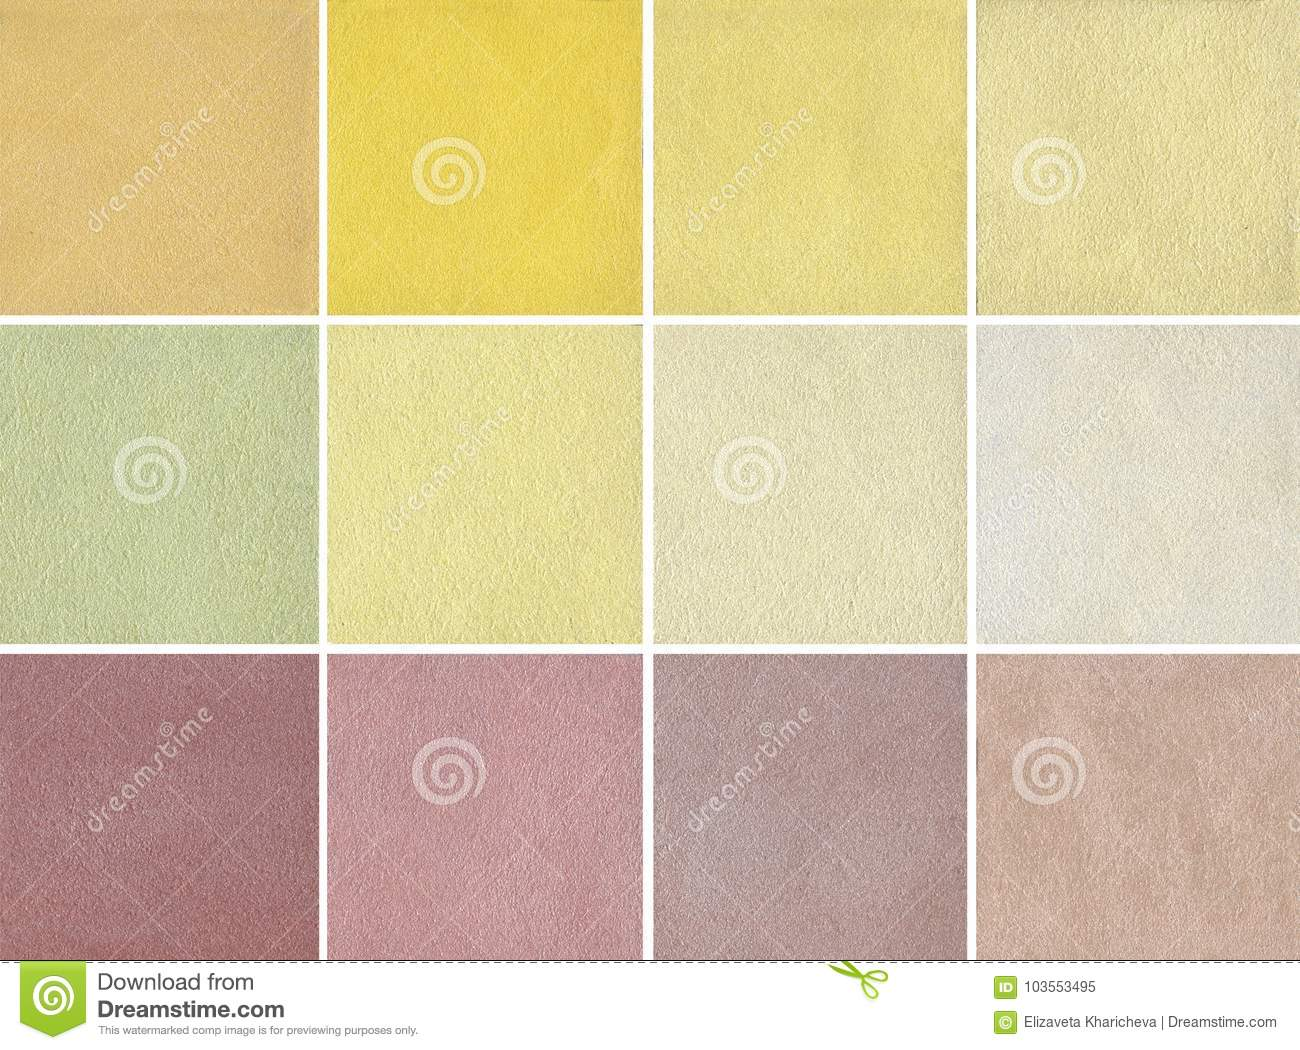 Samples Of Warm Color - Decorative Plaster, Coating - Silk Stock ...